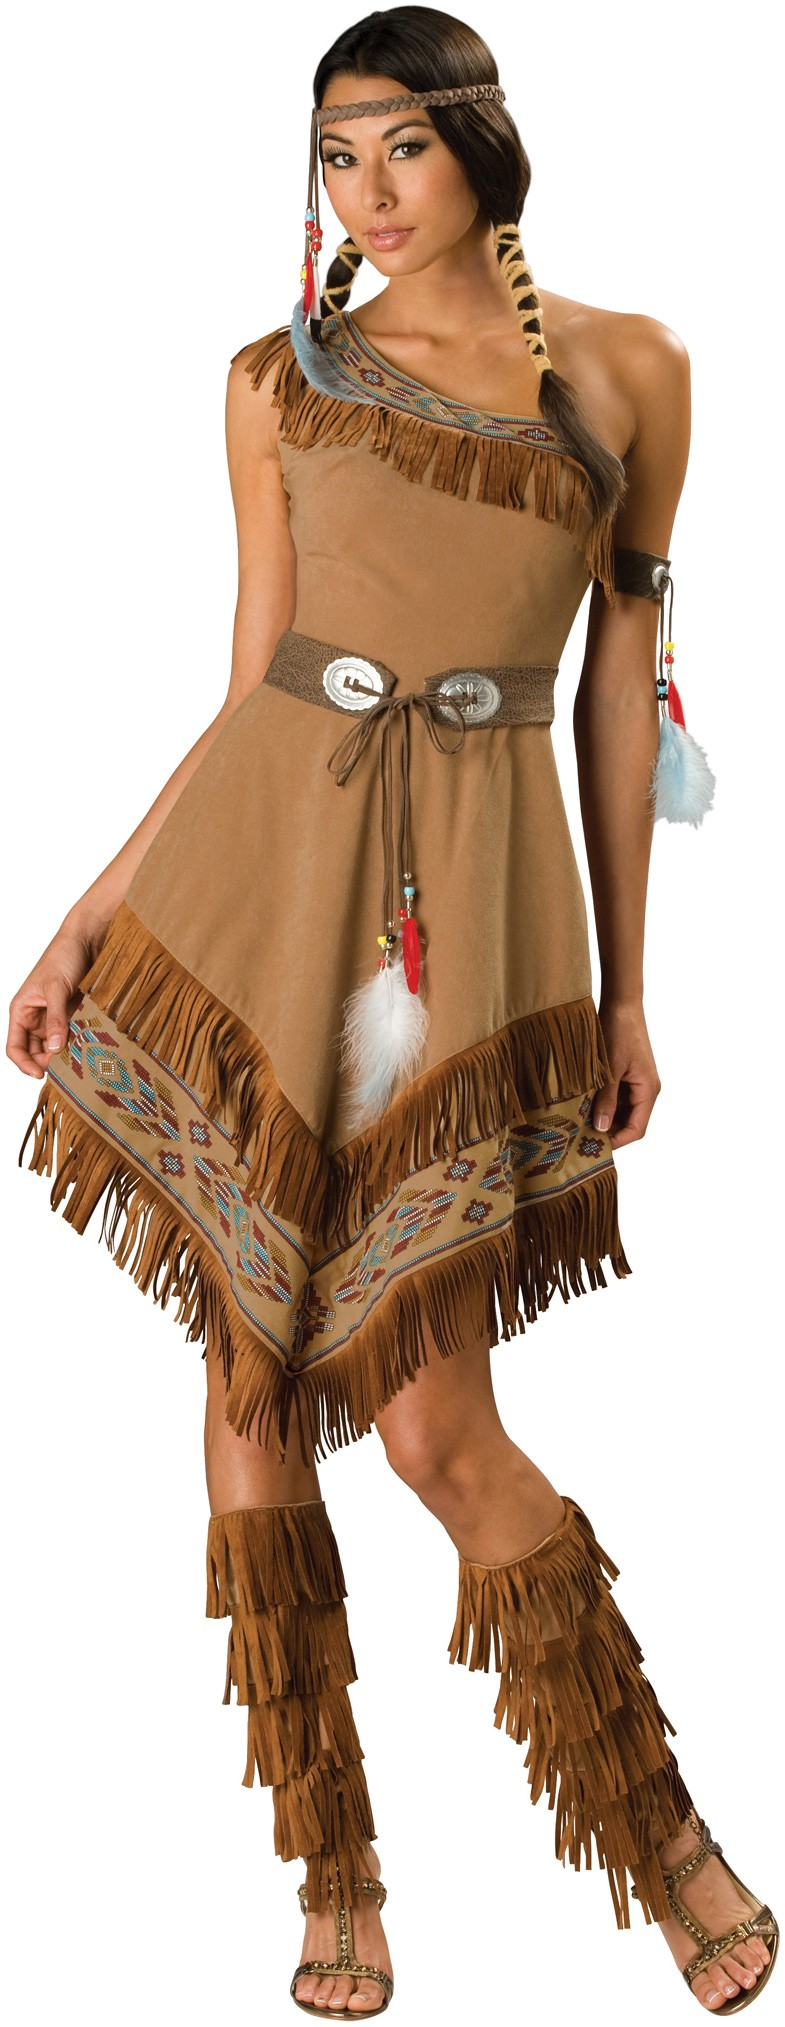 e6702413fb8 Native American Indian Maiden Adult Women s Costume.jpg